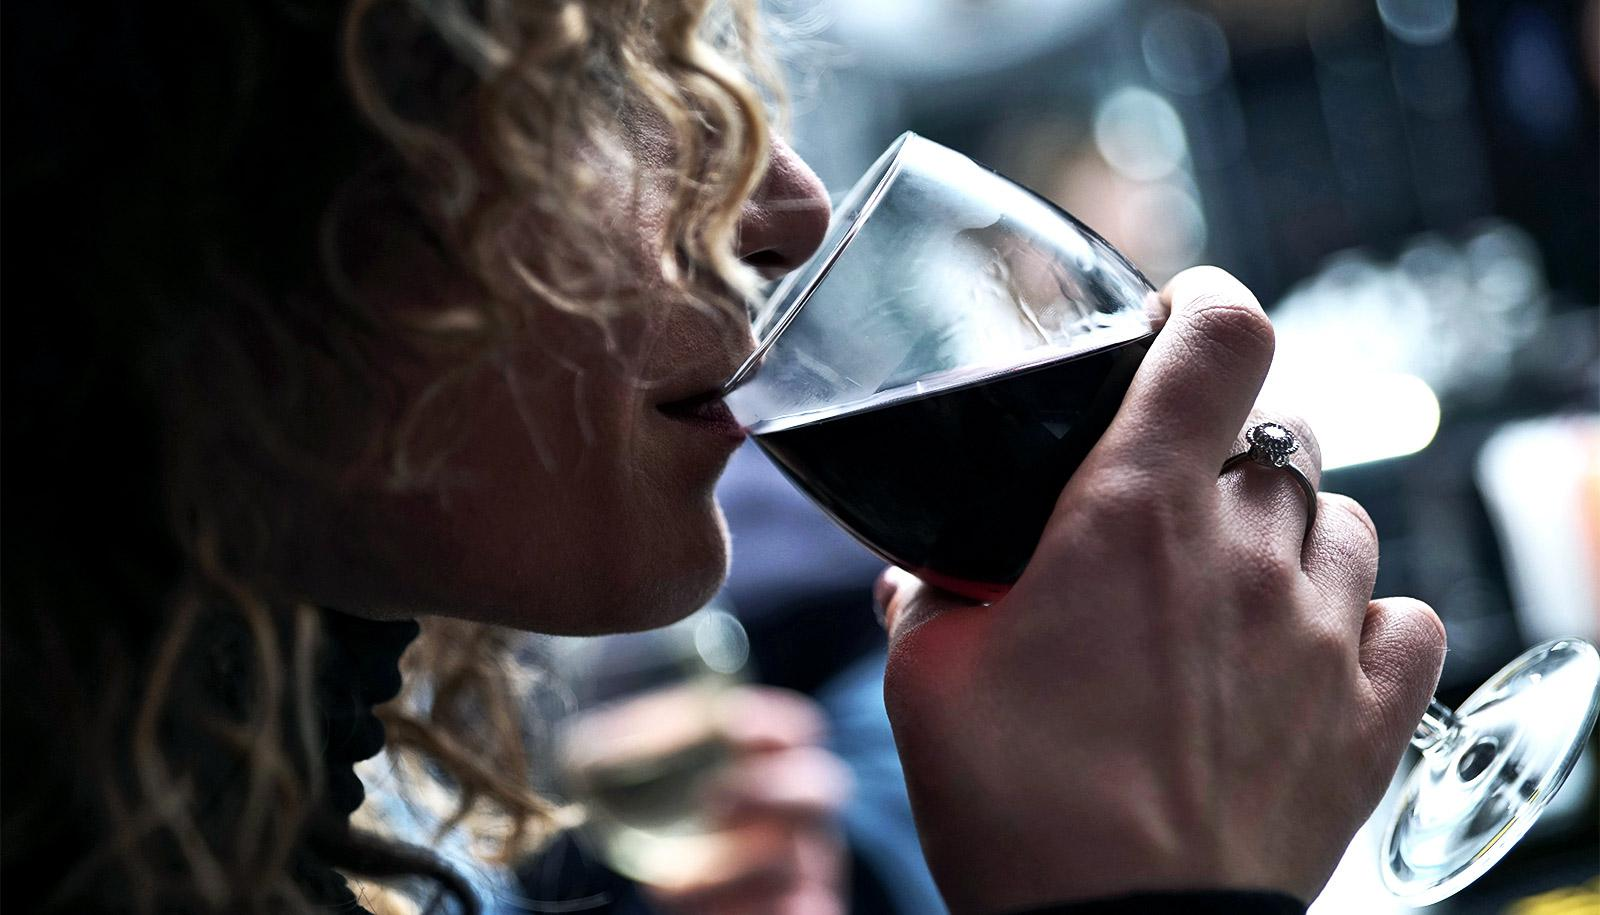 A woman with curly hair sips a glass of red wine